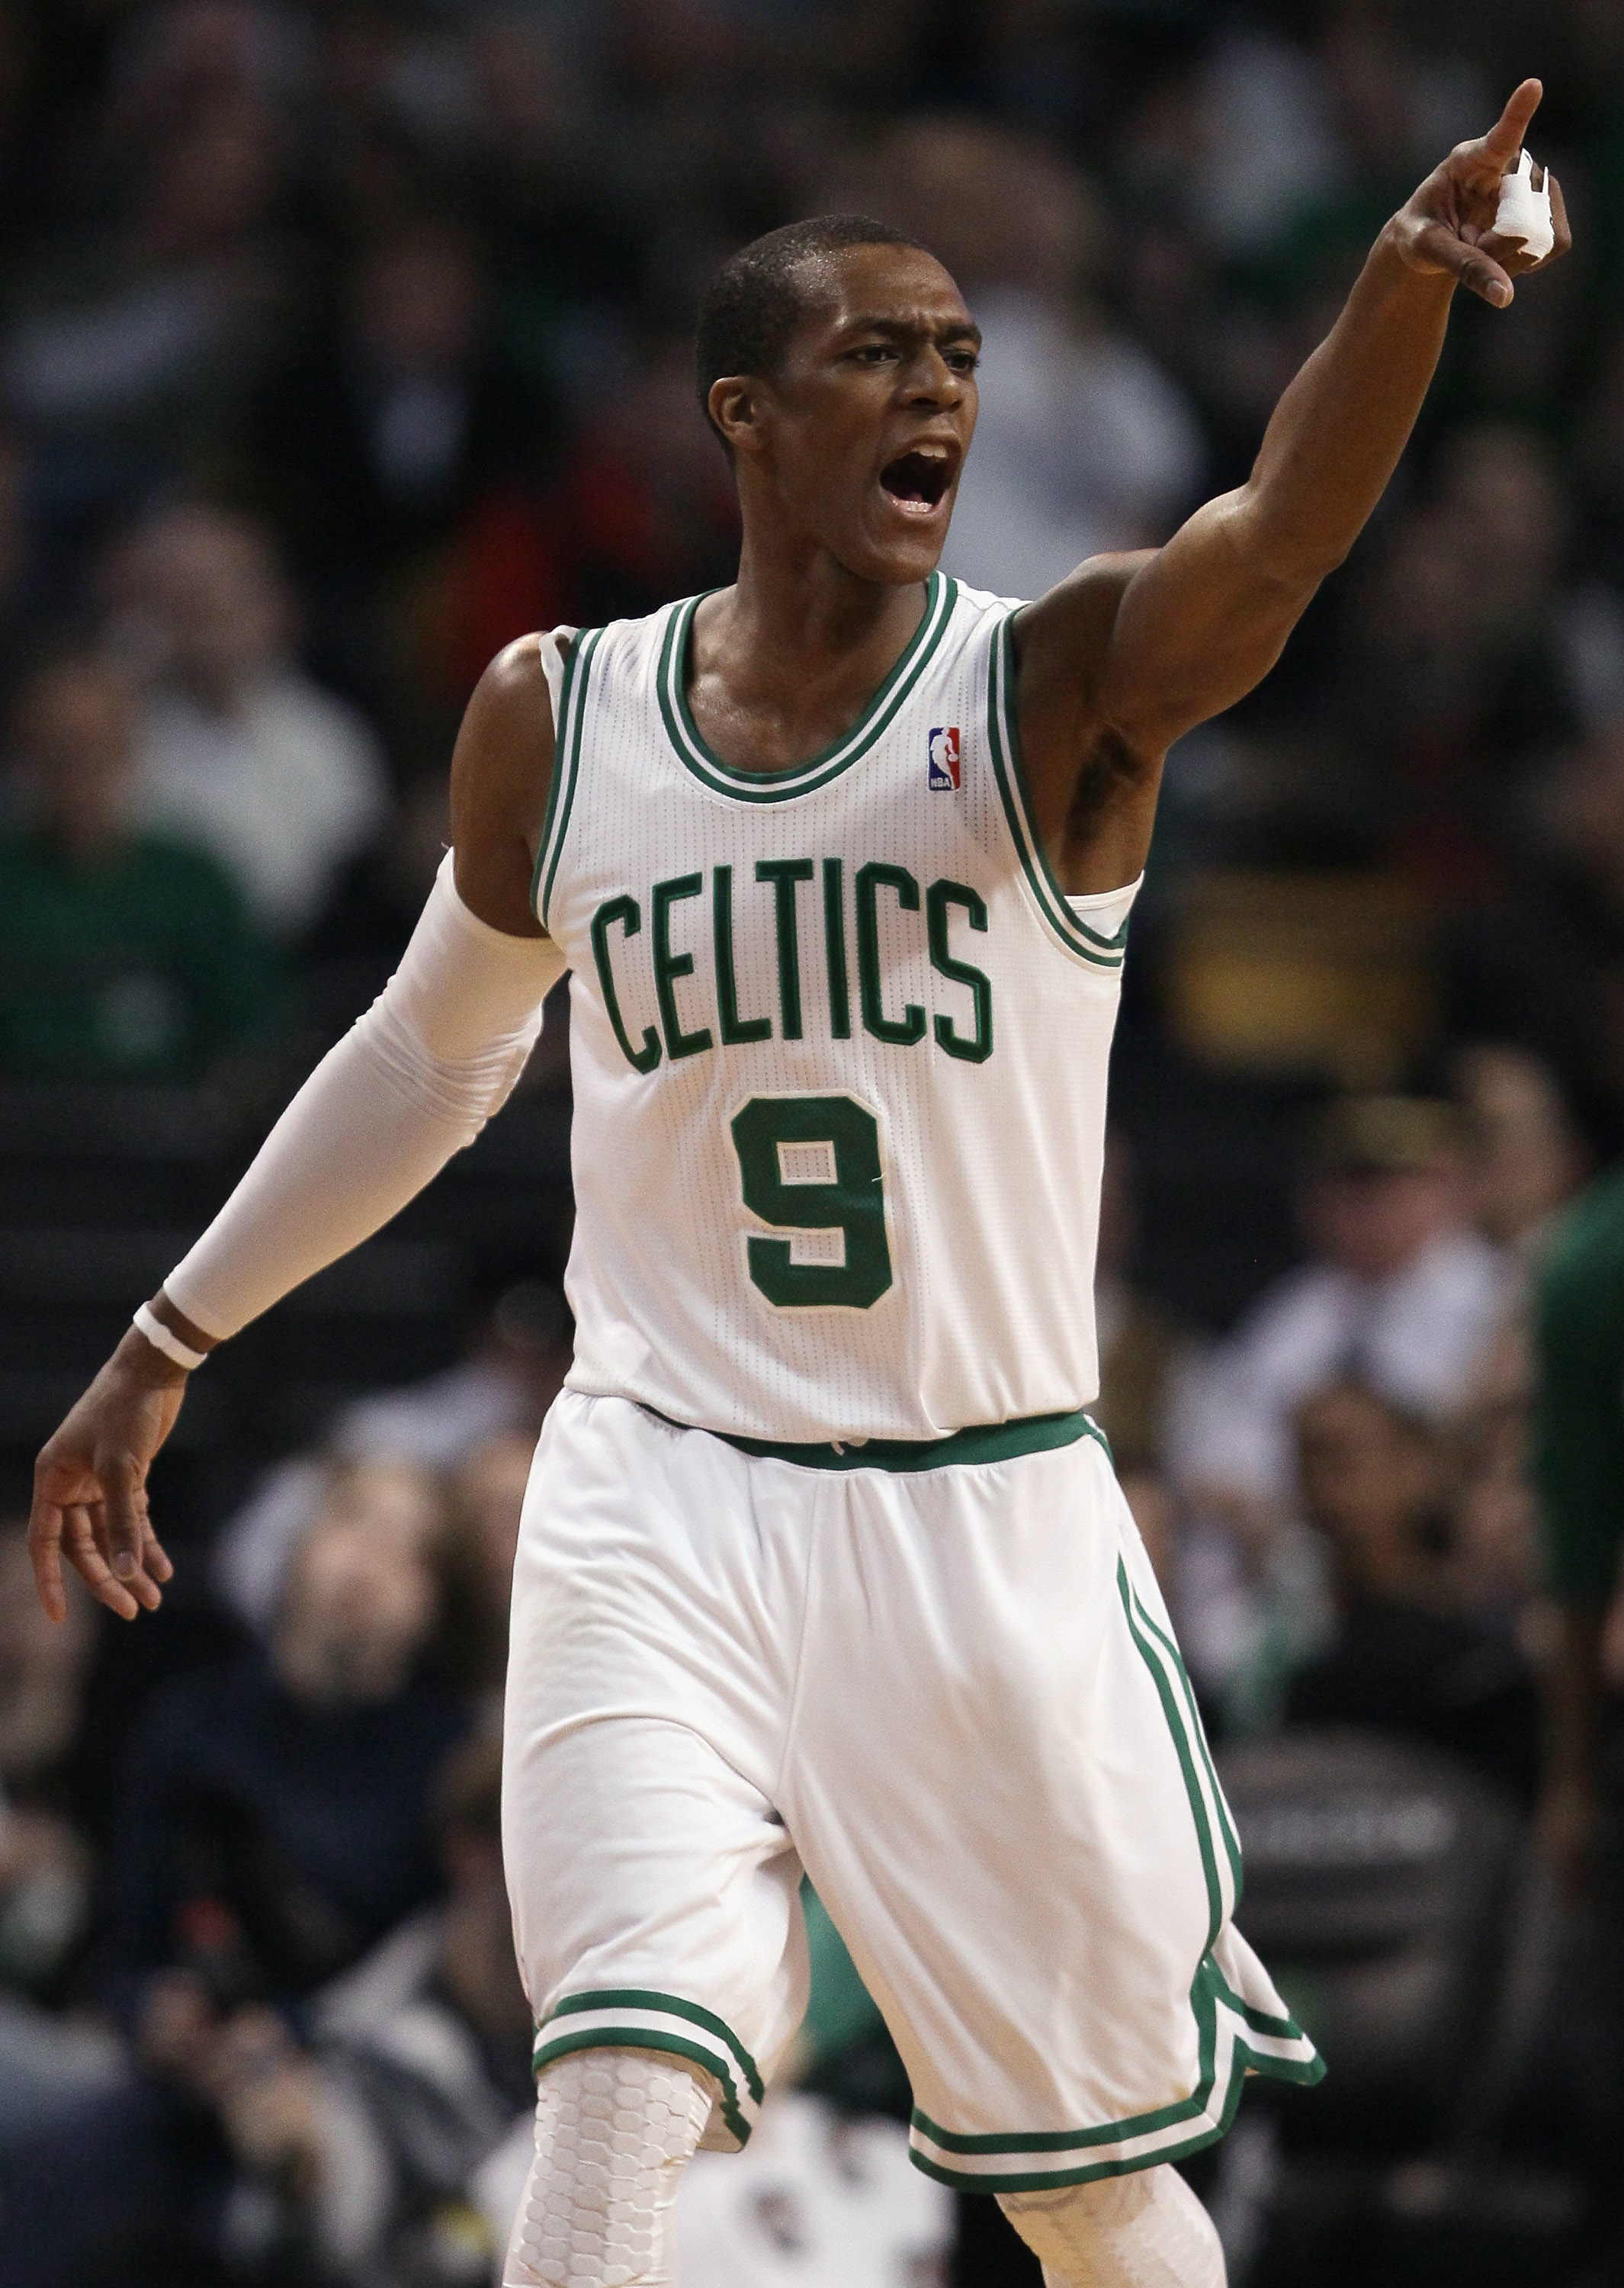 BOSTON, MA - MARCH 04:  Rajon Rondo #9 of the Boston Celtics calls out to his teammates in the first half against the Golden State Warriors on March 4, 2011 at the TD Garden in Boston, Massachusetts.  NOTE TO USER: User expressly acknowledges and agrees t